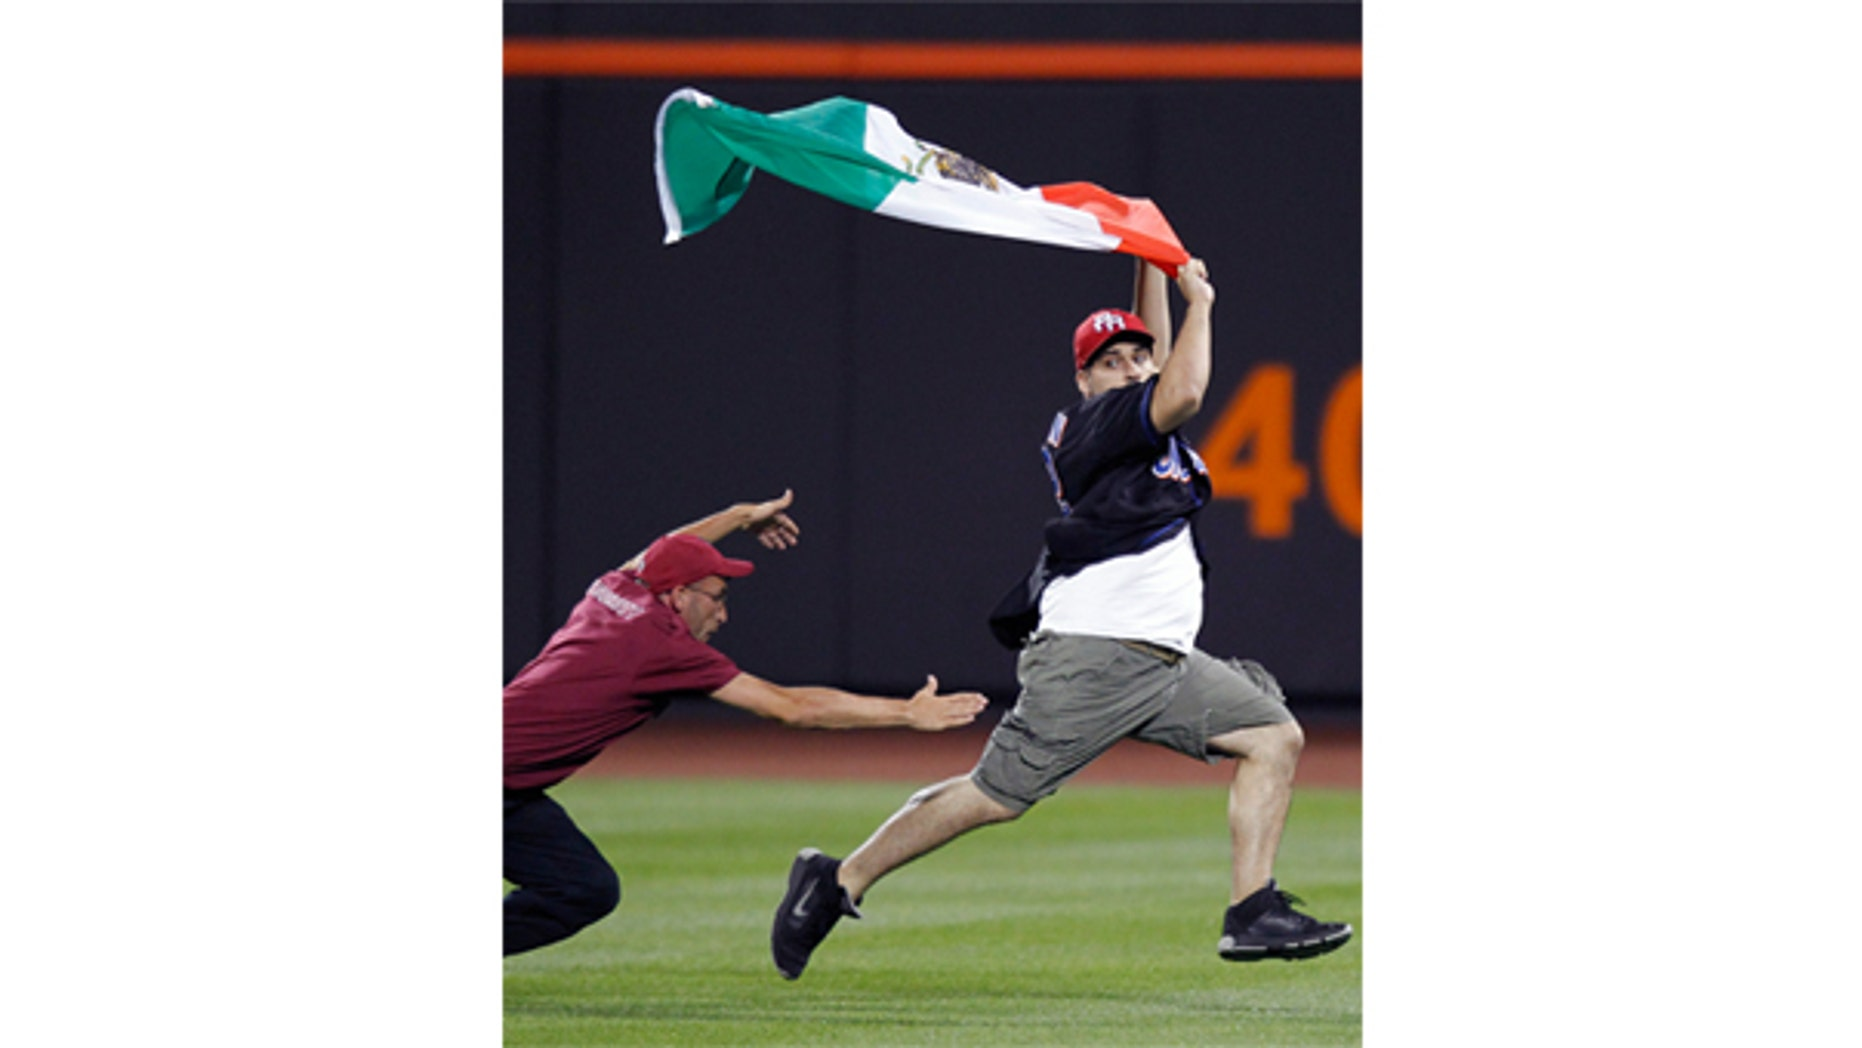 July 30: A Citi Field security guard tries to tackle a young man carrying a Mexican flag who ran onto the field in the seventh inning of the New York Mets vs the Arizona Diamondbacks baseball game in New York.